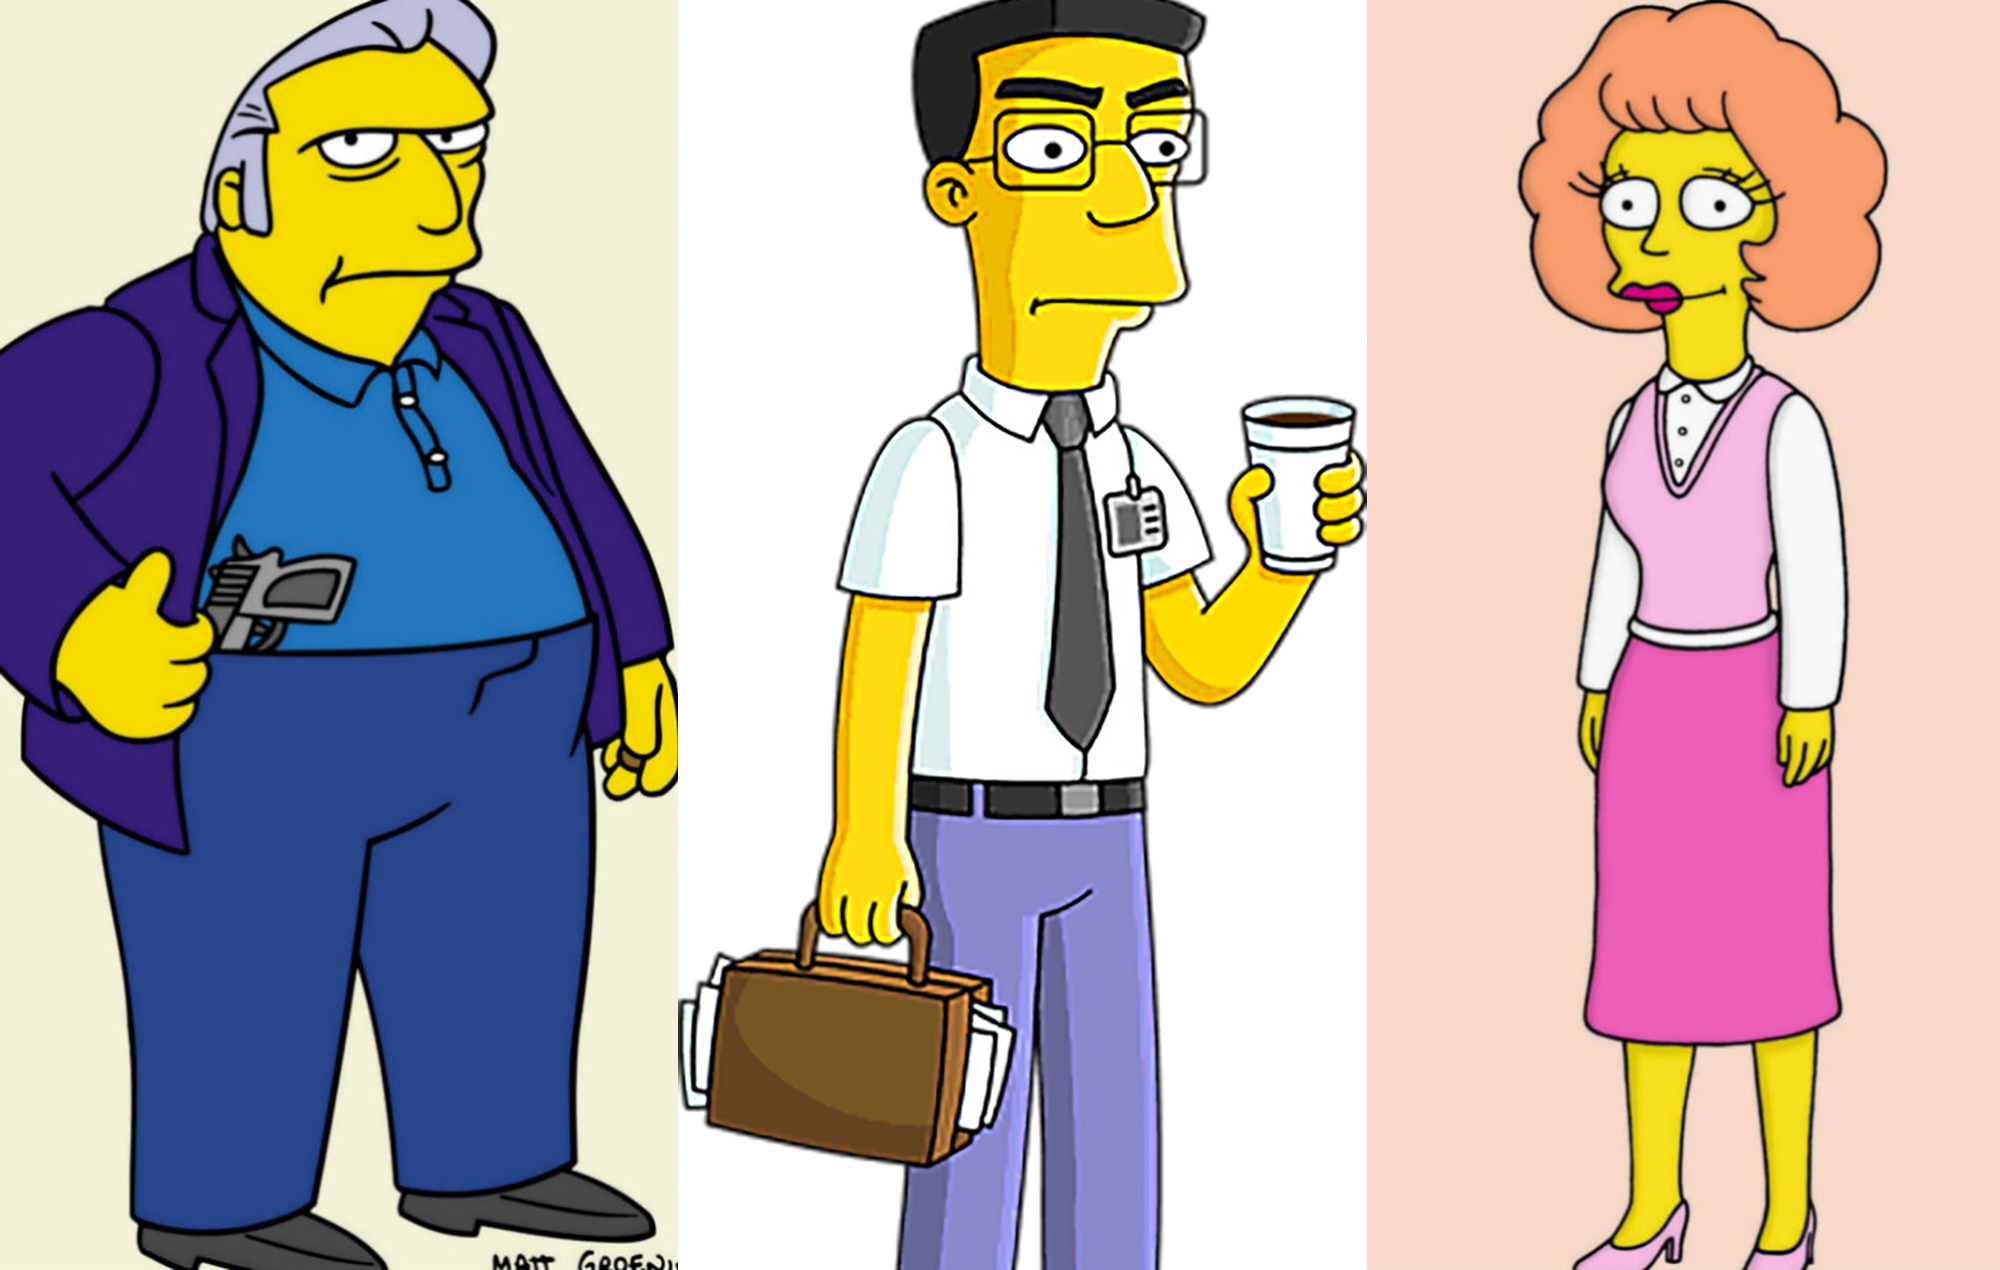 The Simpsons 9 Times The Show Has Killed Off Significant Characters